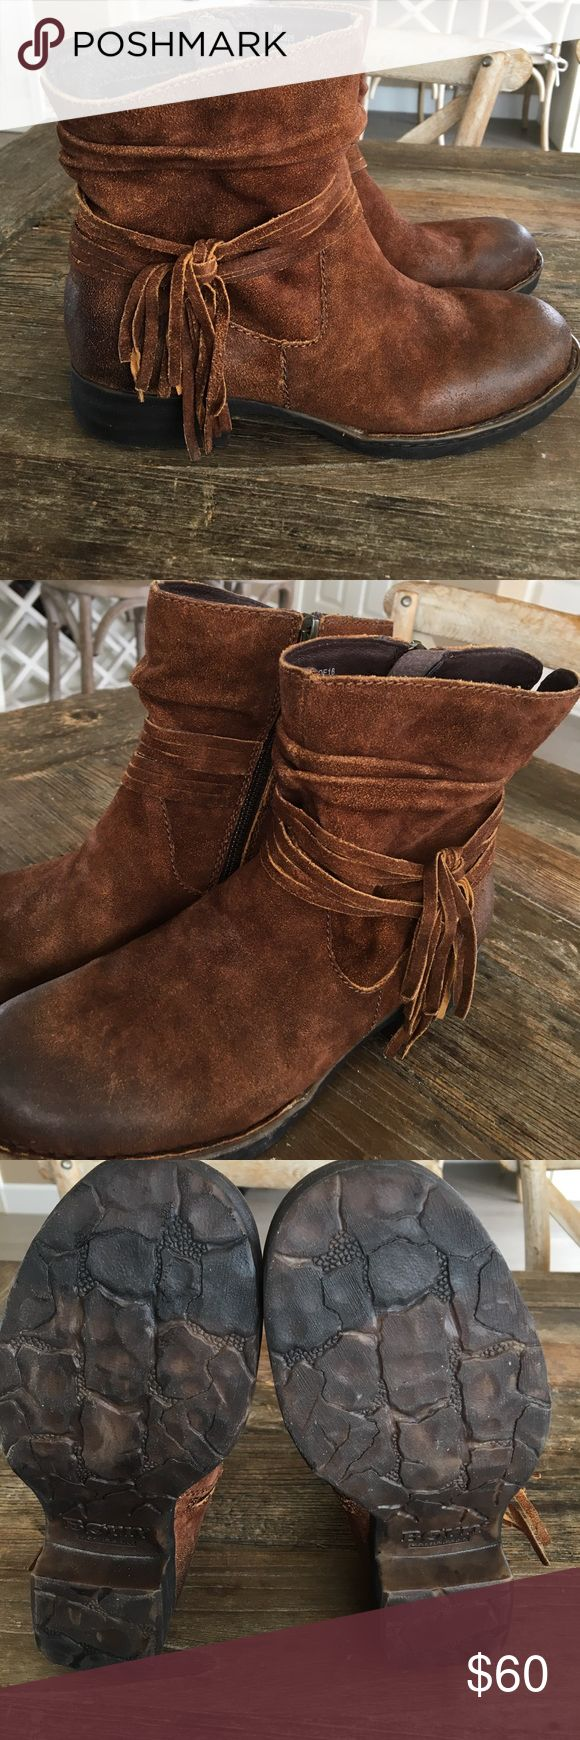 BoRN Boots Cross Distressed Leather 8 Tobacco These beautiful Distressed Suede Leather BORN Tobacco size 8 Boots are beyond comfortable and will go with your BoHo, country or modern style! Super cute and comfy and only worn twice. These sell for $150+ My low price is firm Born Shoes Ankle Boots & Booties